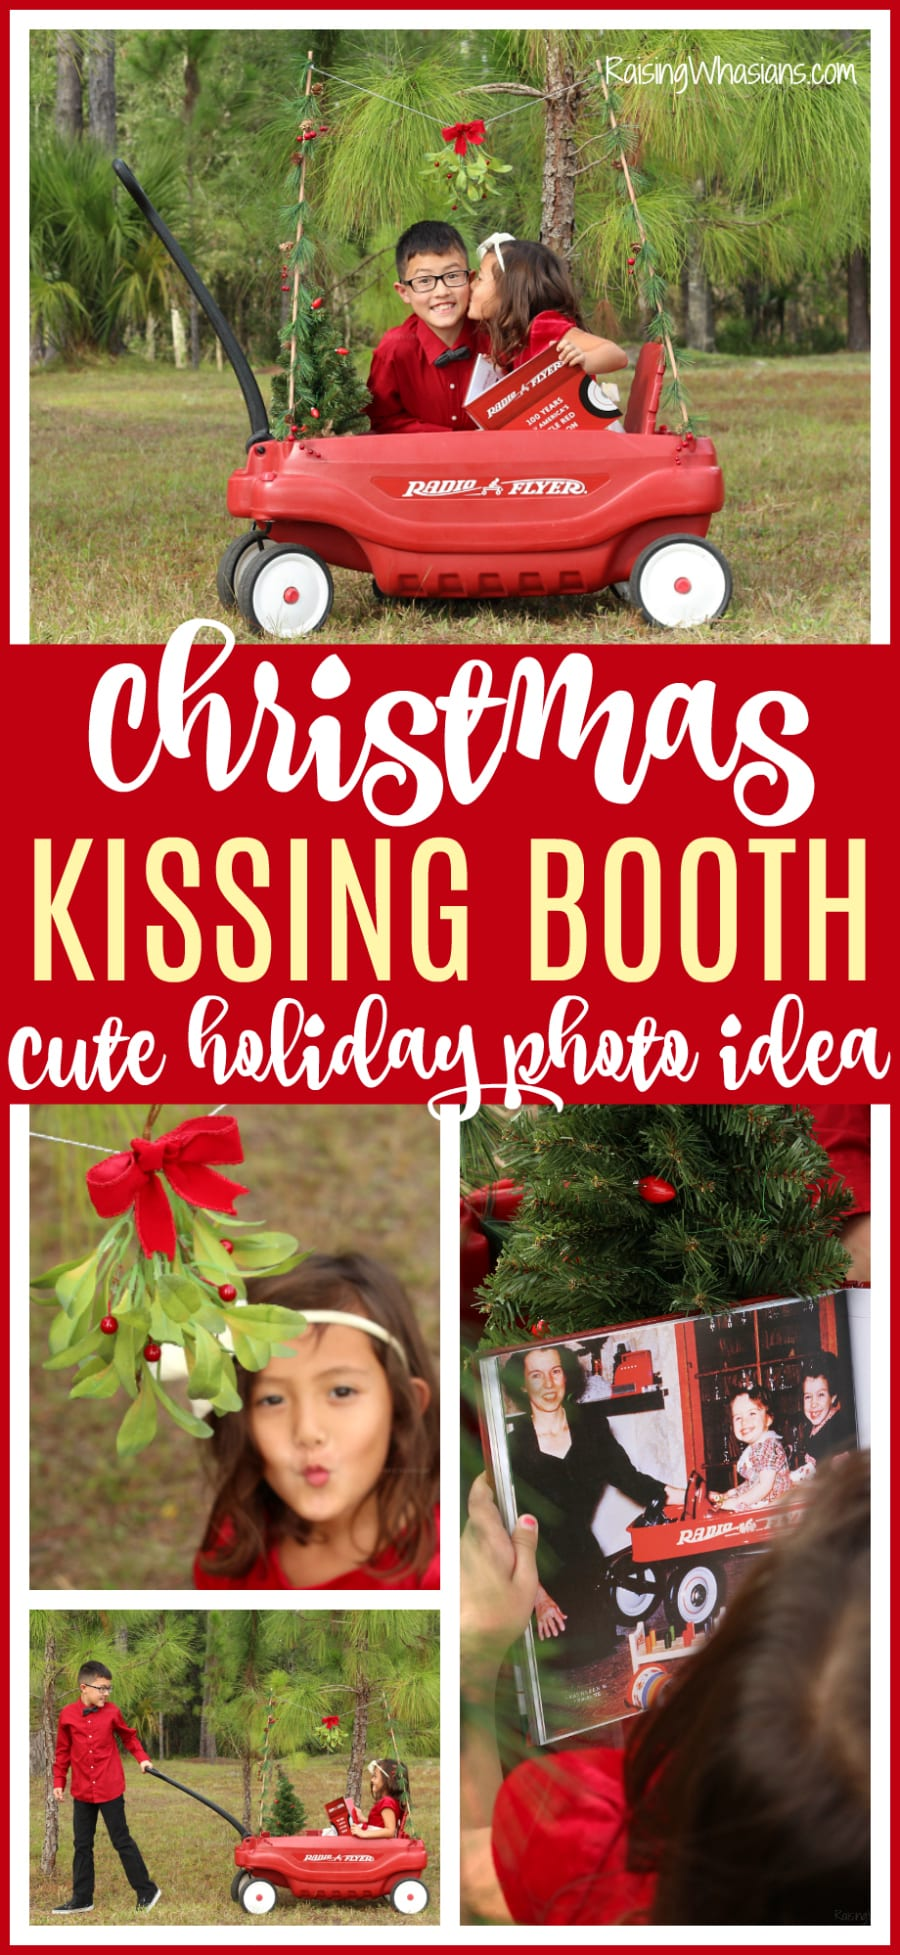 Cute kid Christmas photo shoot idea